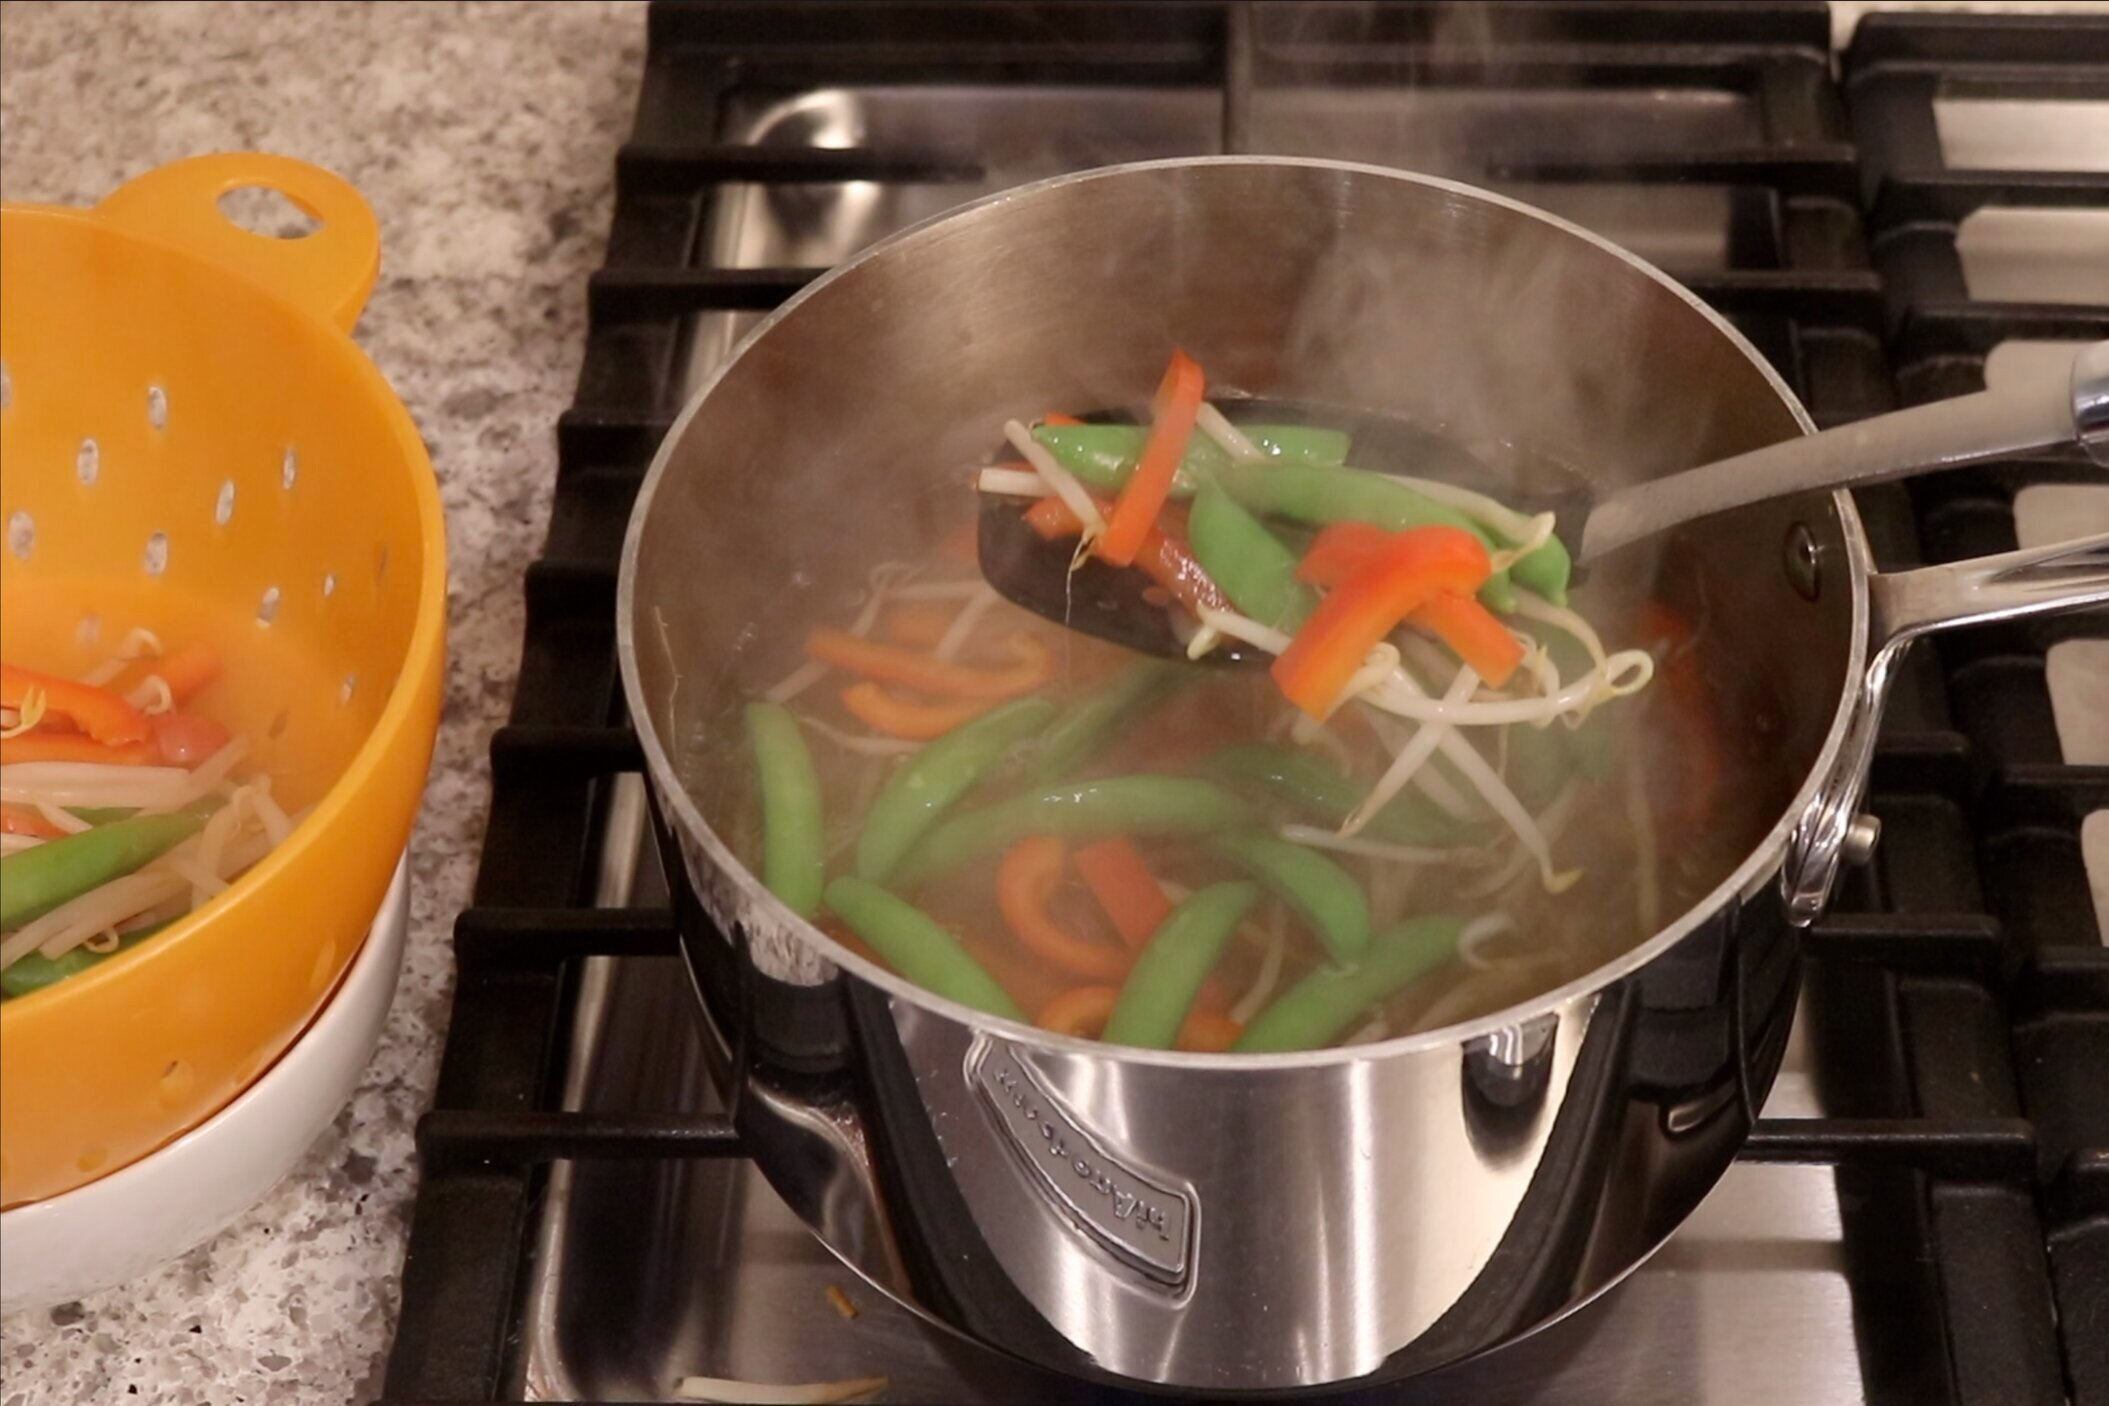 6. Cook the bell pepper, peas and sprouts in the water for 3 minutes. Remove from the pot using a slotted spoon, set aside. -